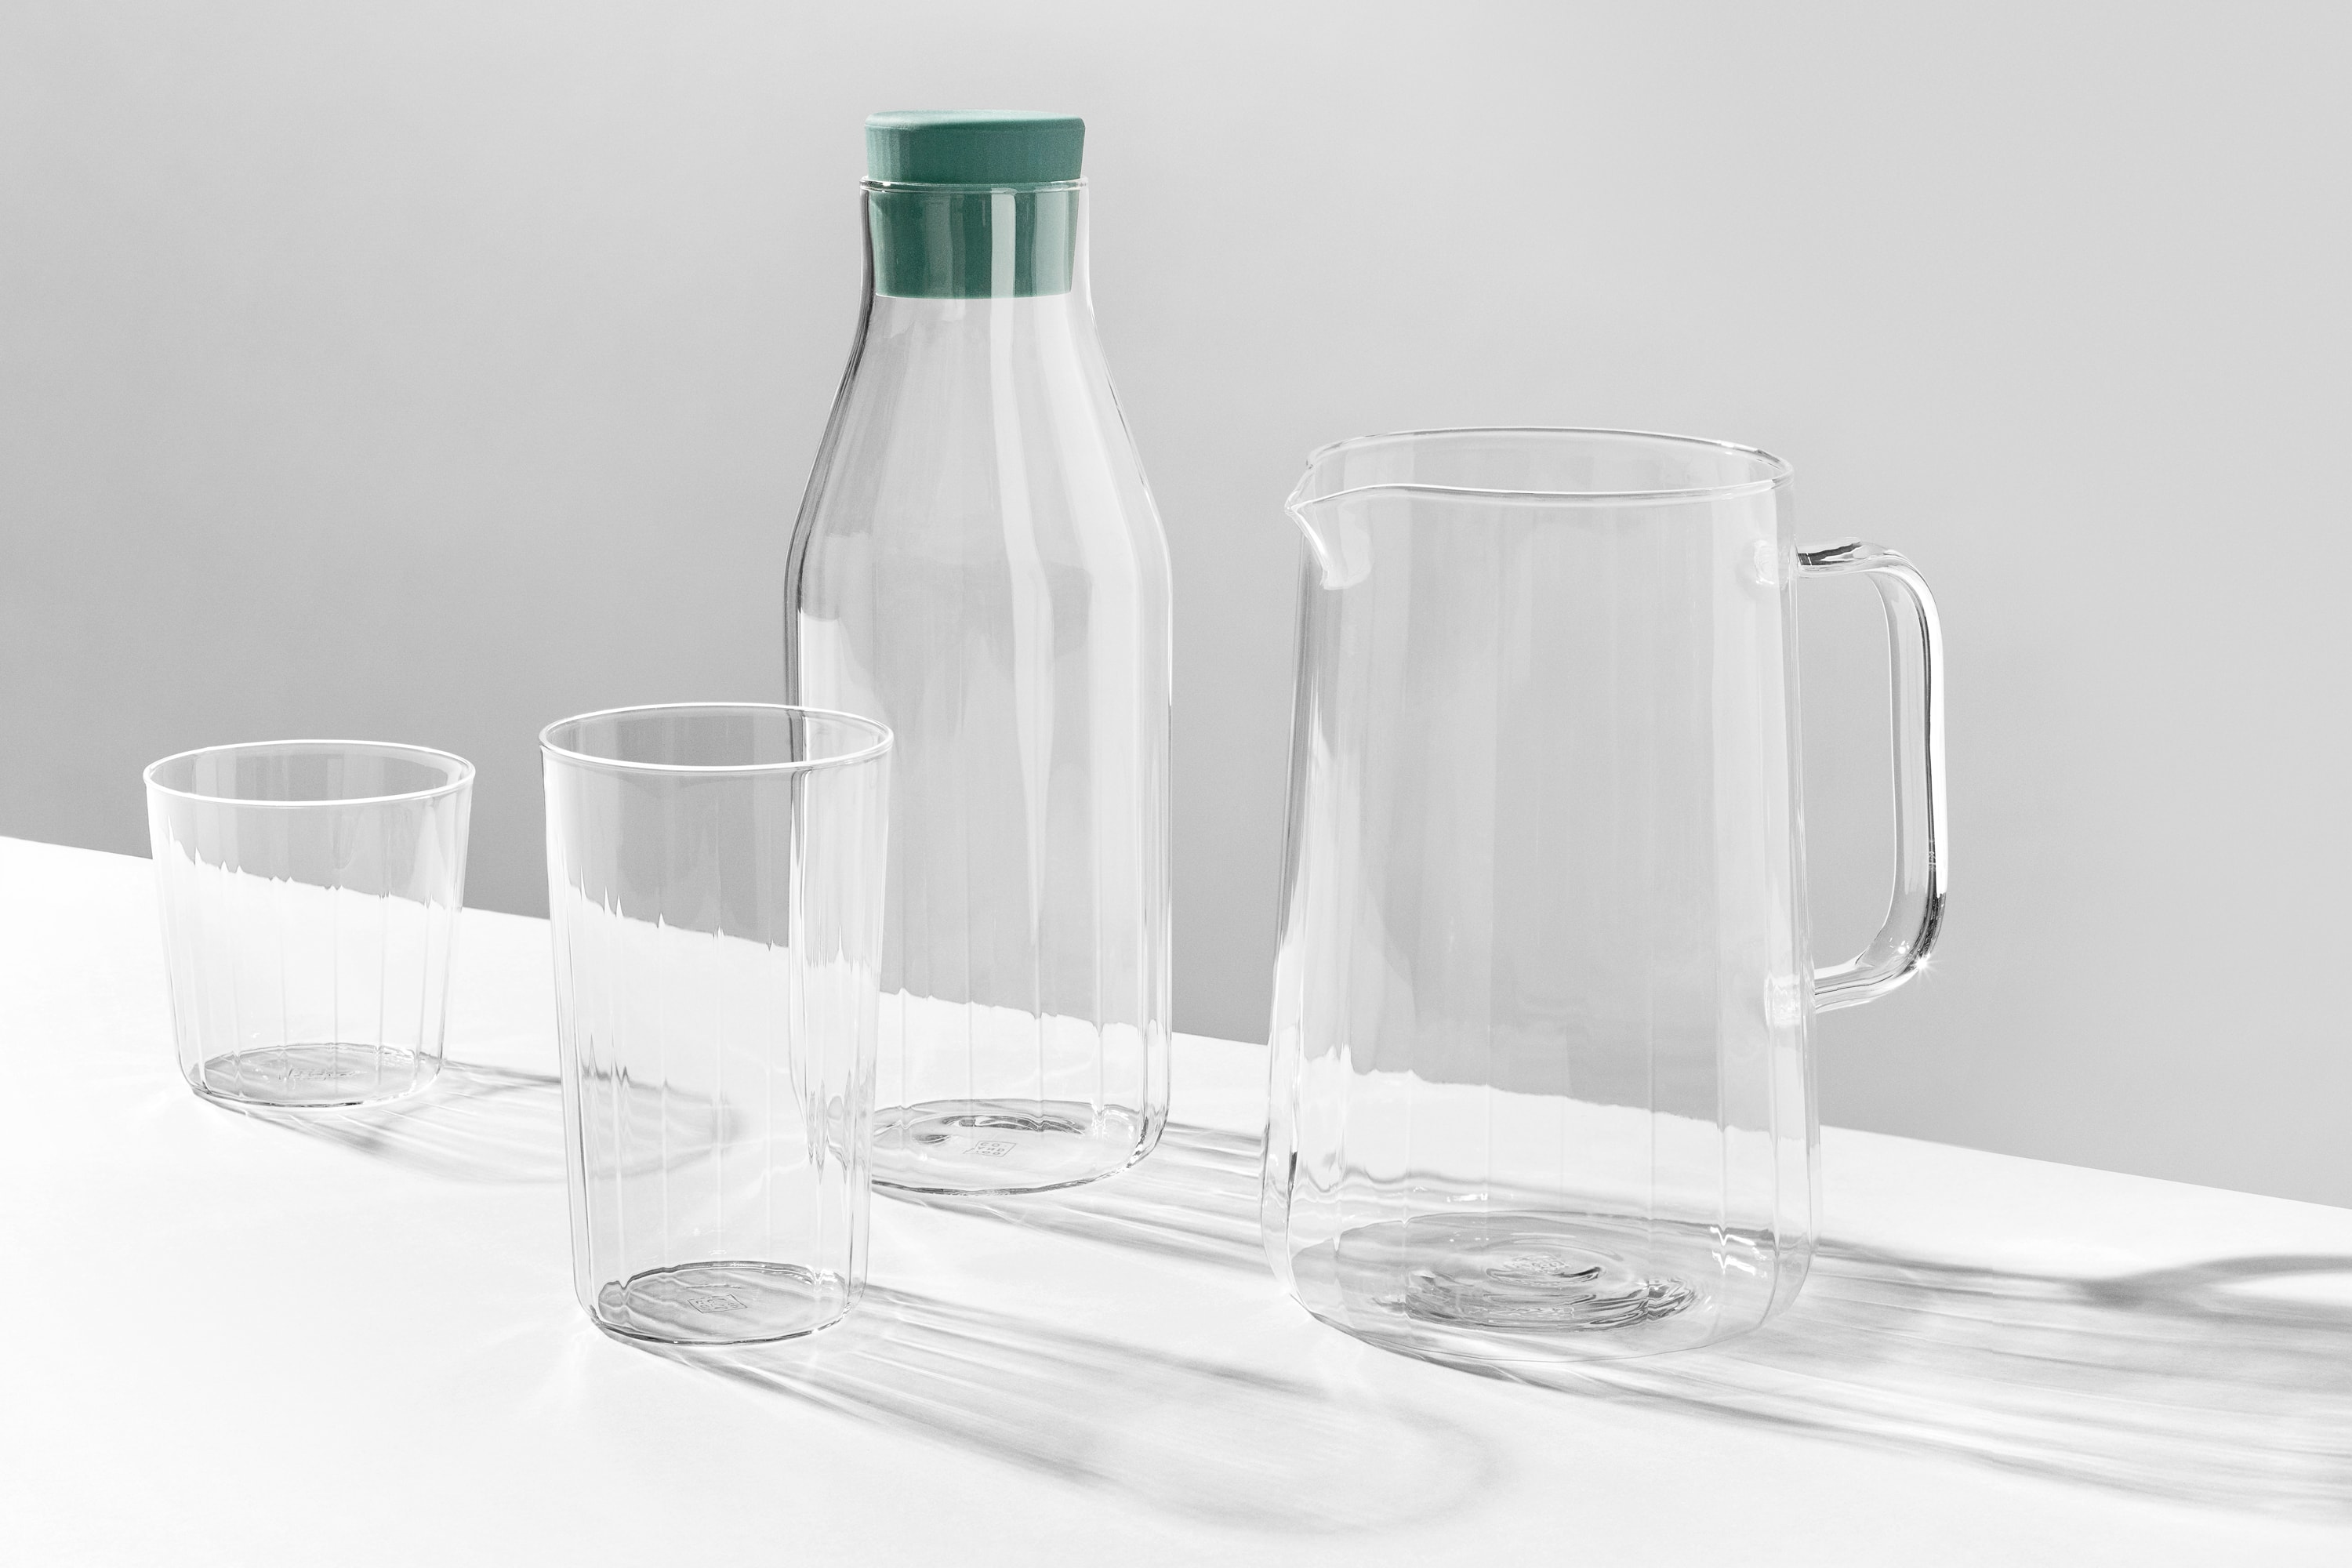 Rivington Glassware tumbler, high ball, jug and carafe on a white surface. The lighting is causing the shadows to be stretched across the surface, emphasising the facets.